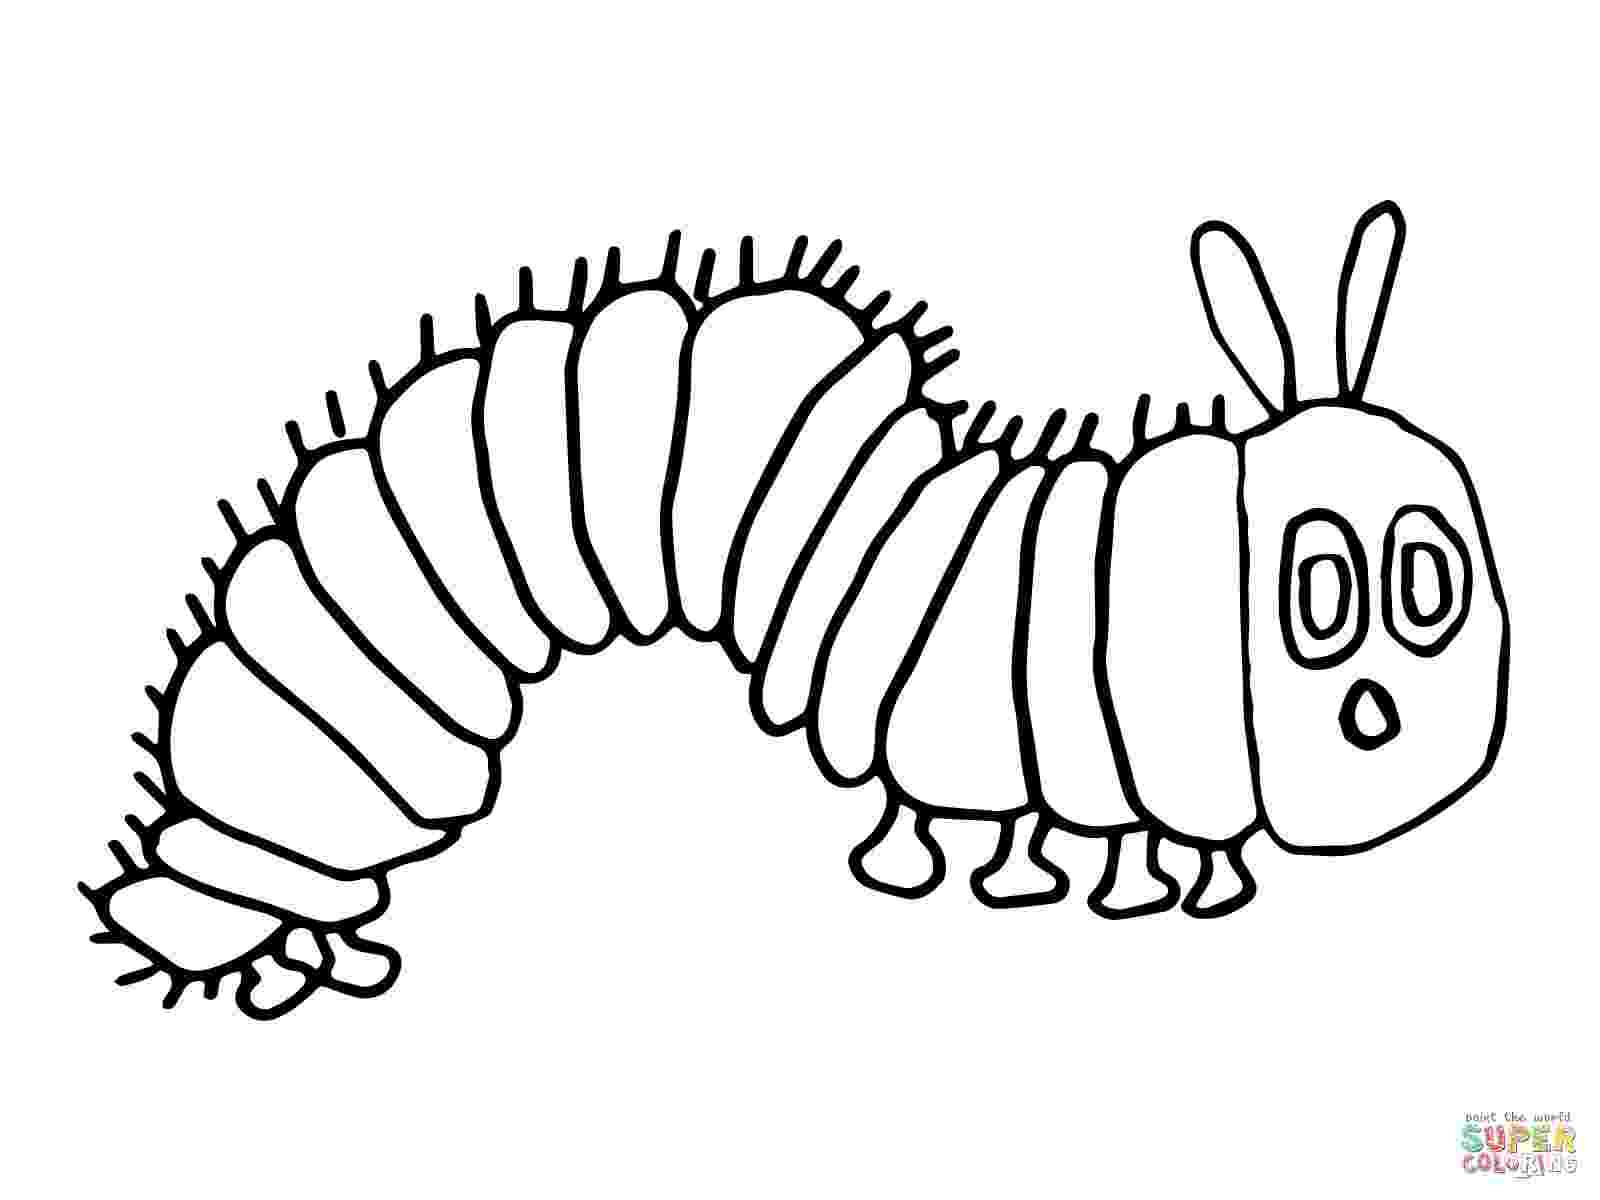 very hungry caterpillar coloring page very hungry caterpillar coloring pages to download and page coloring very hungry caterpillar